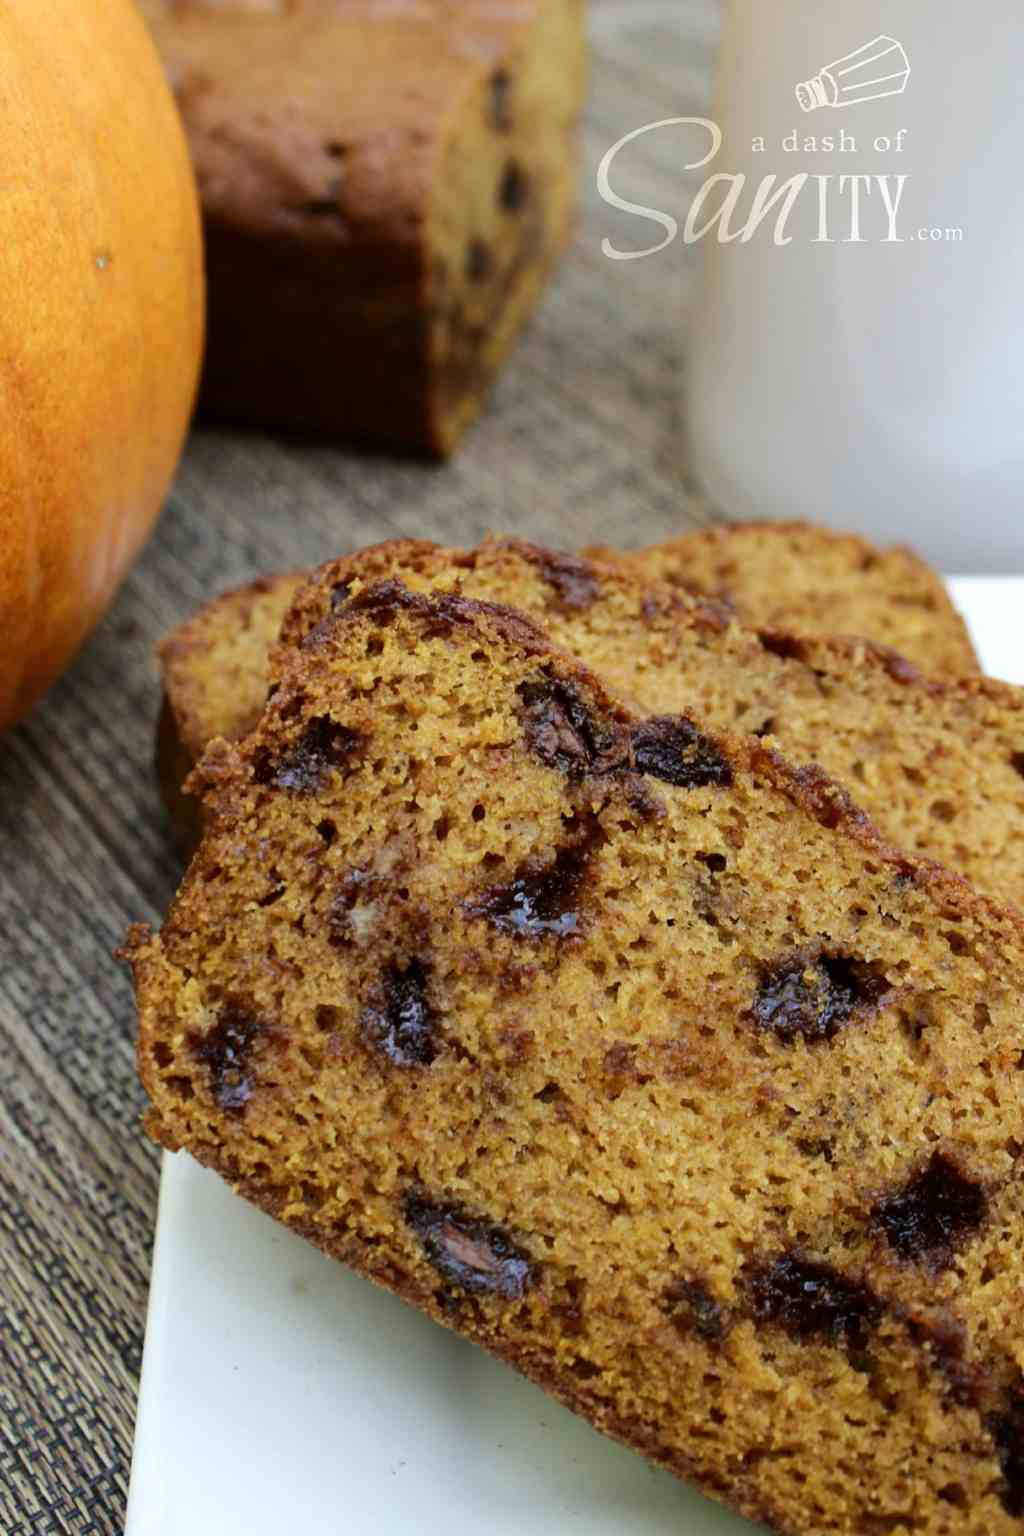 This Downeast Chocolate Chip Pumpkin Bread combines the warm taste of pumpkin with sweet and gooey chocolate chips, making a morning masterpiece.